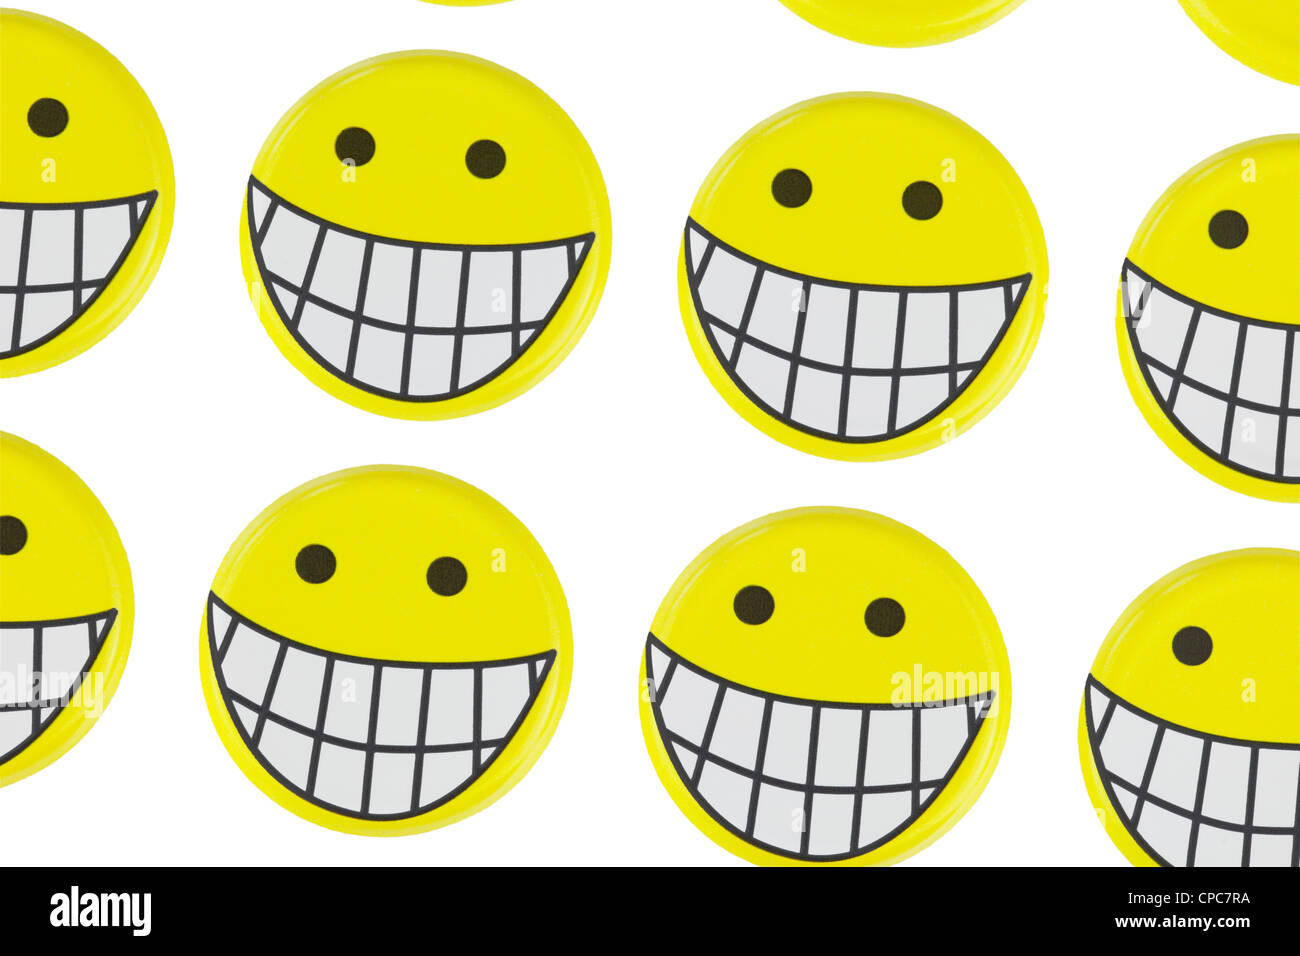 Laughing Face Emoticons Stock Photos